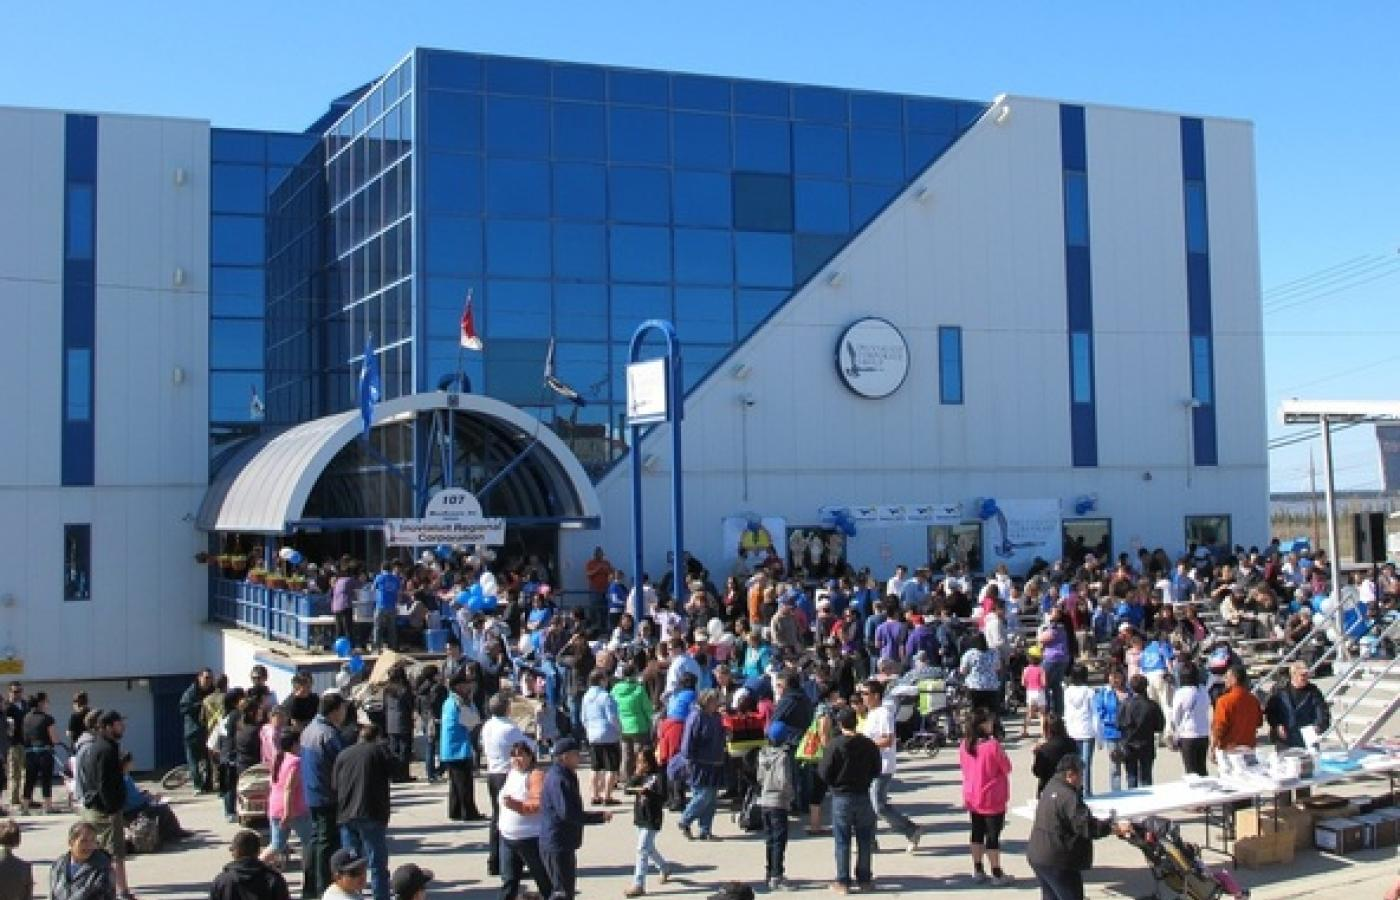 Celebrate Inuvialuit Day in Inuvik, the Western Arctic hub in Canada's Northwest Territories